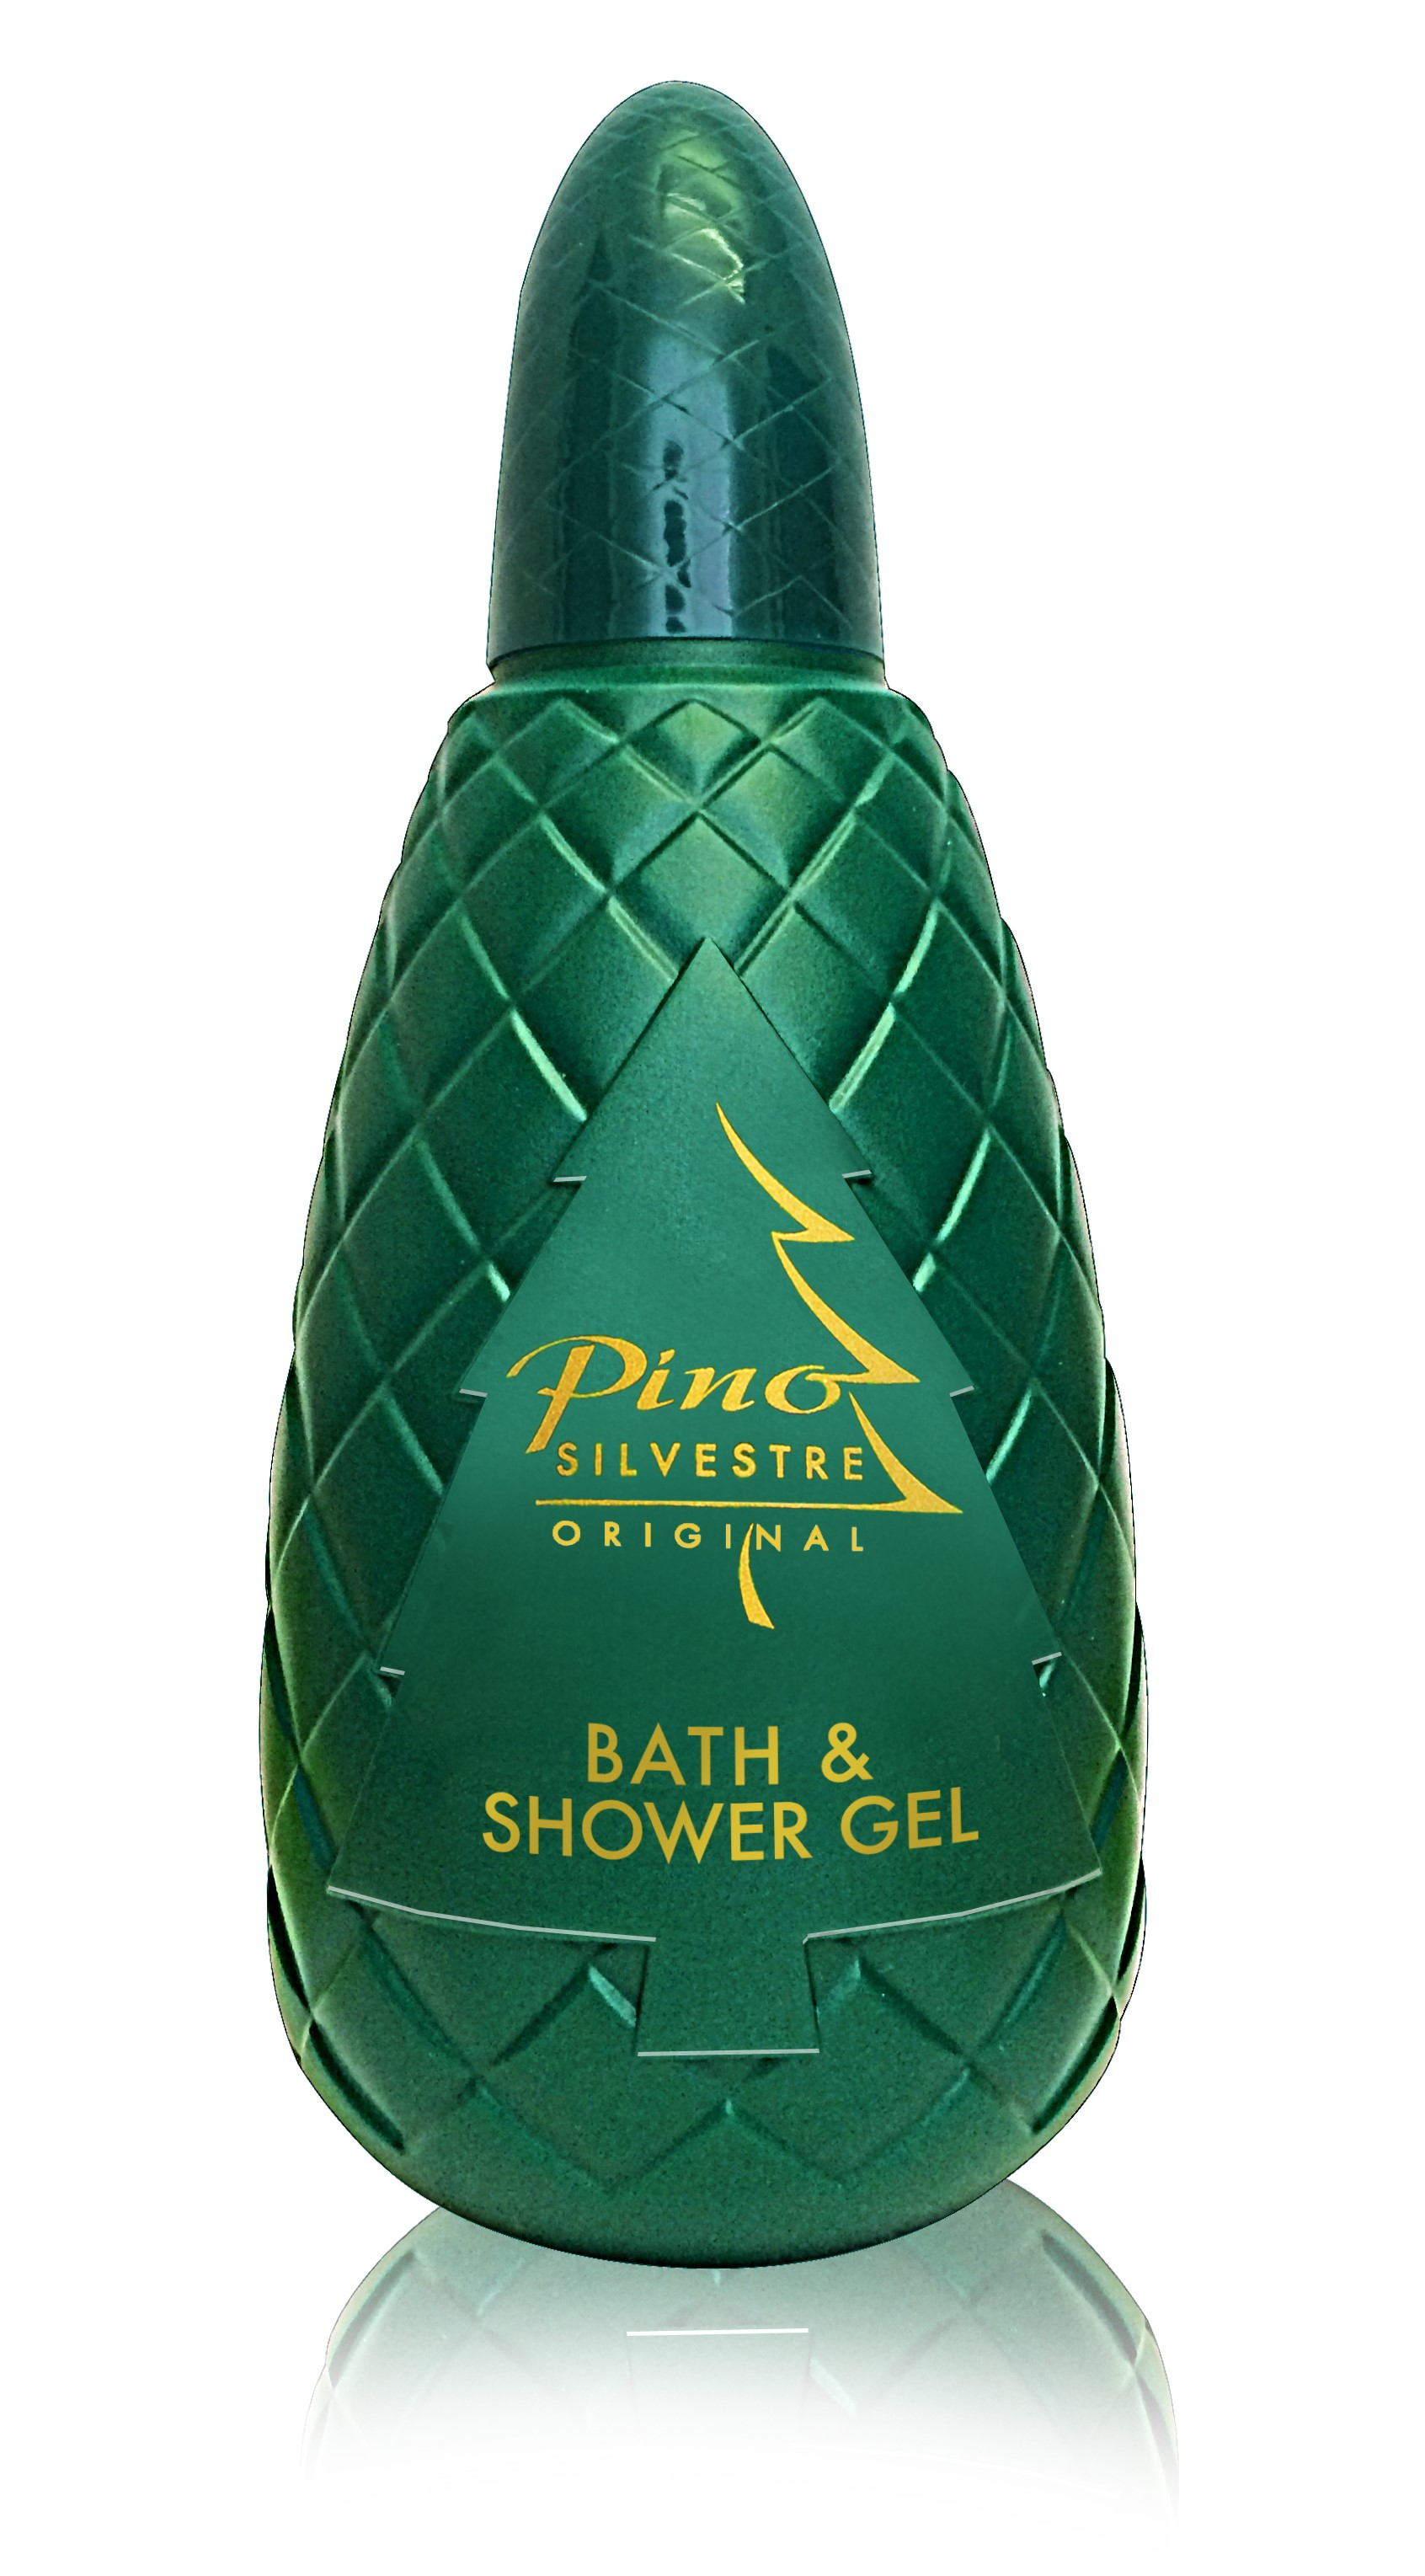 Pino Silvestre Bath & Shower Gel 500ml